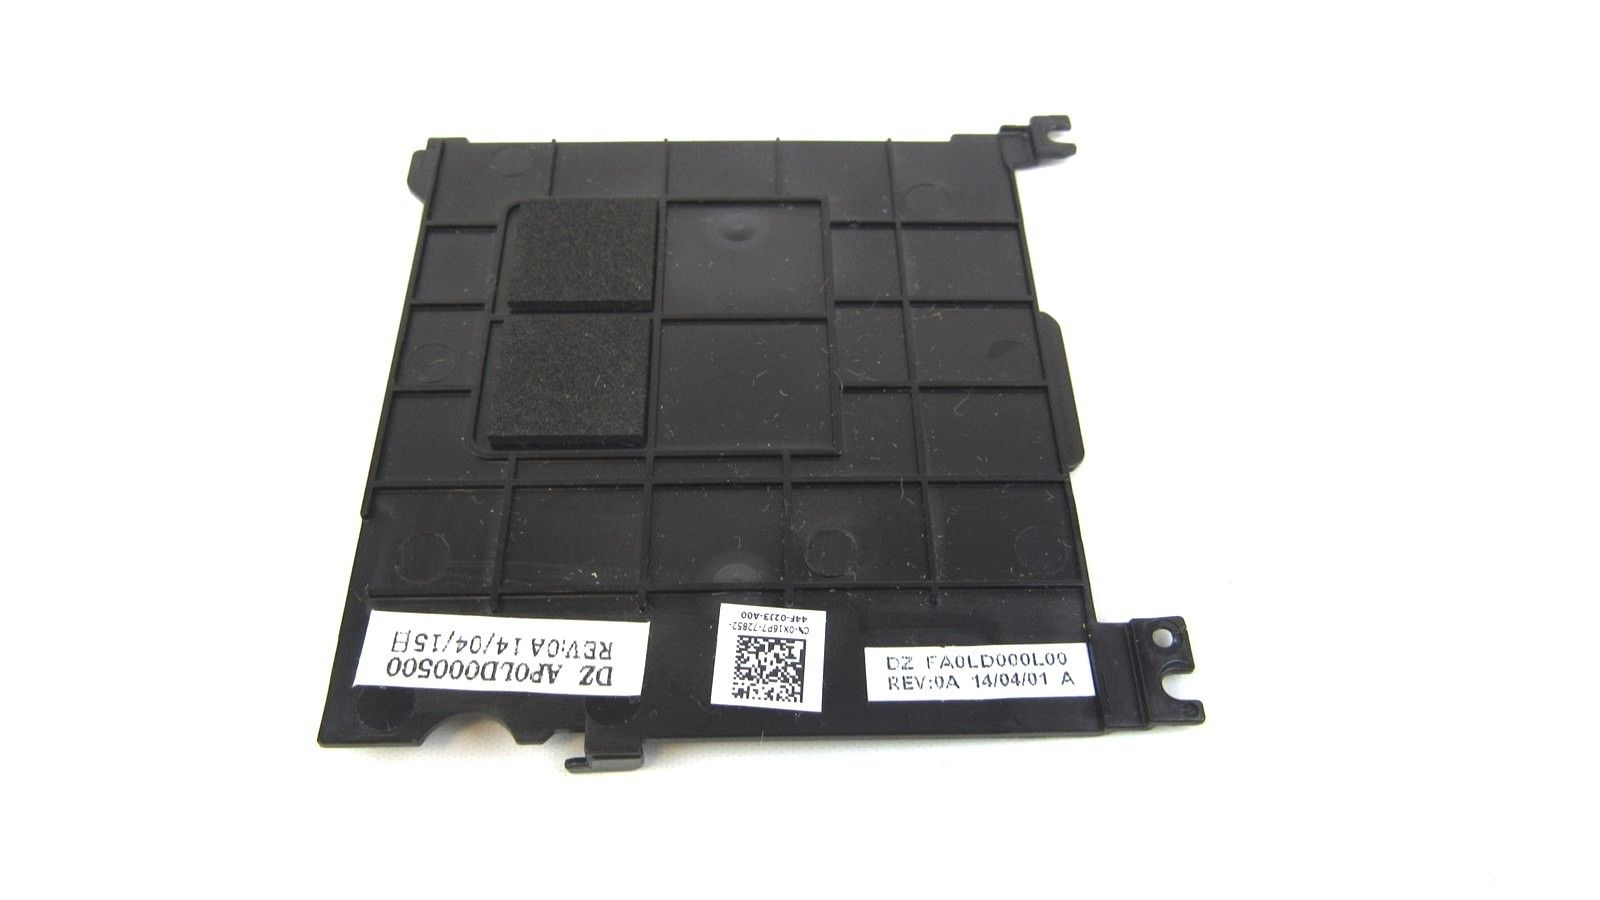 Dell Latitude E6430 Laptop Support Plate Bracket Cover X16P7 0X16P7